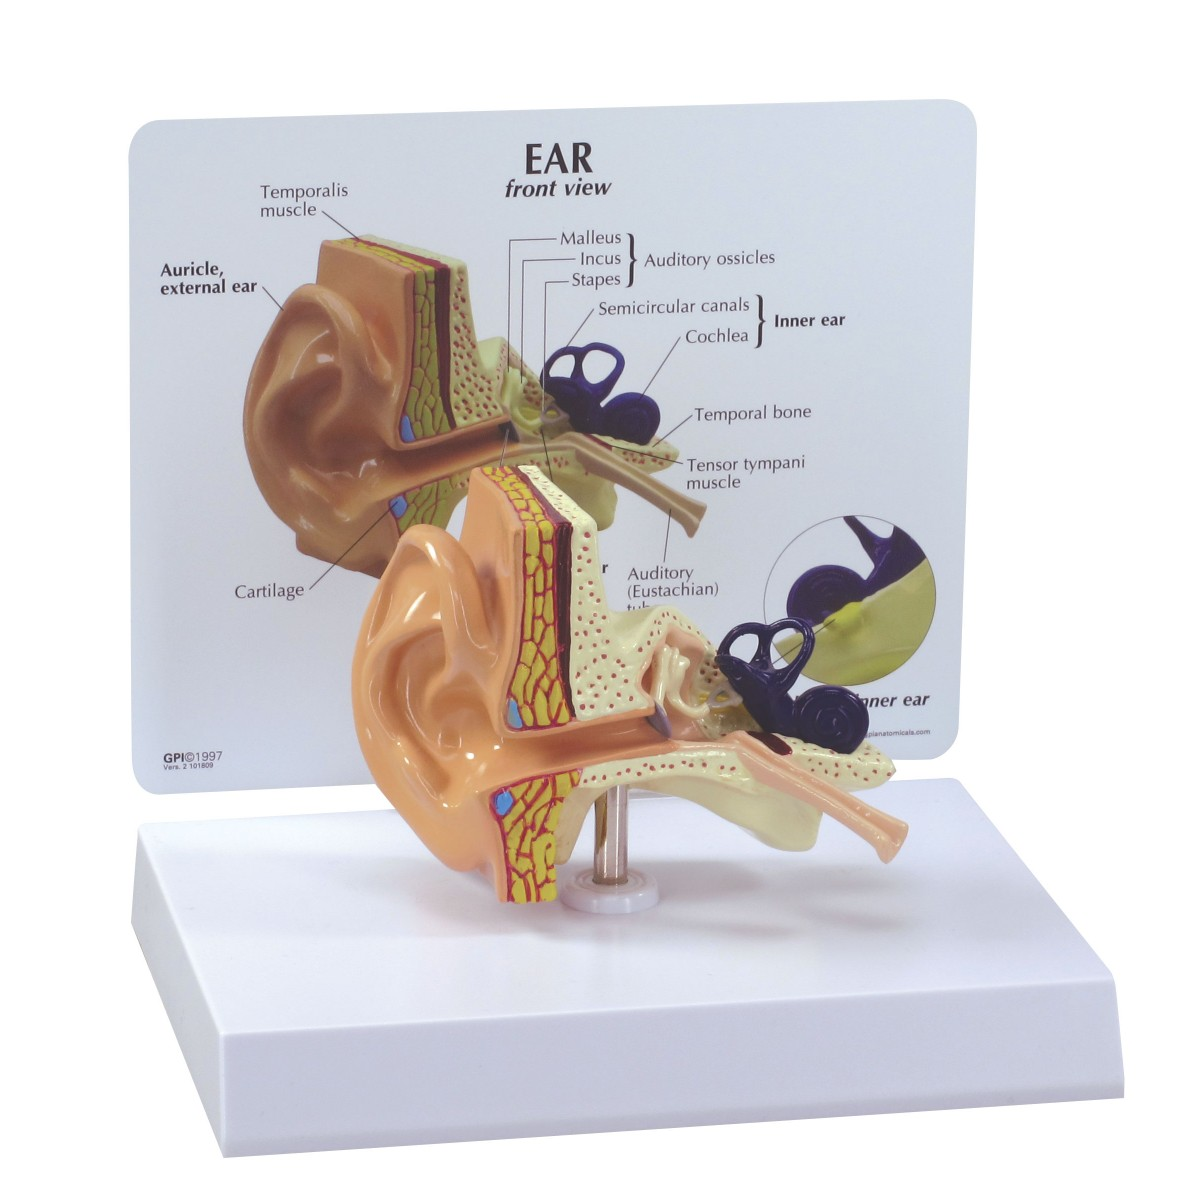 Ear model sense organs human anatomy biology ear model ccuart Image collections